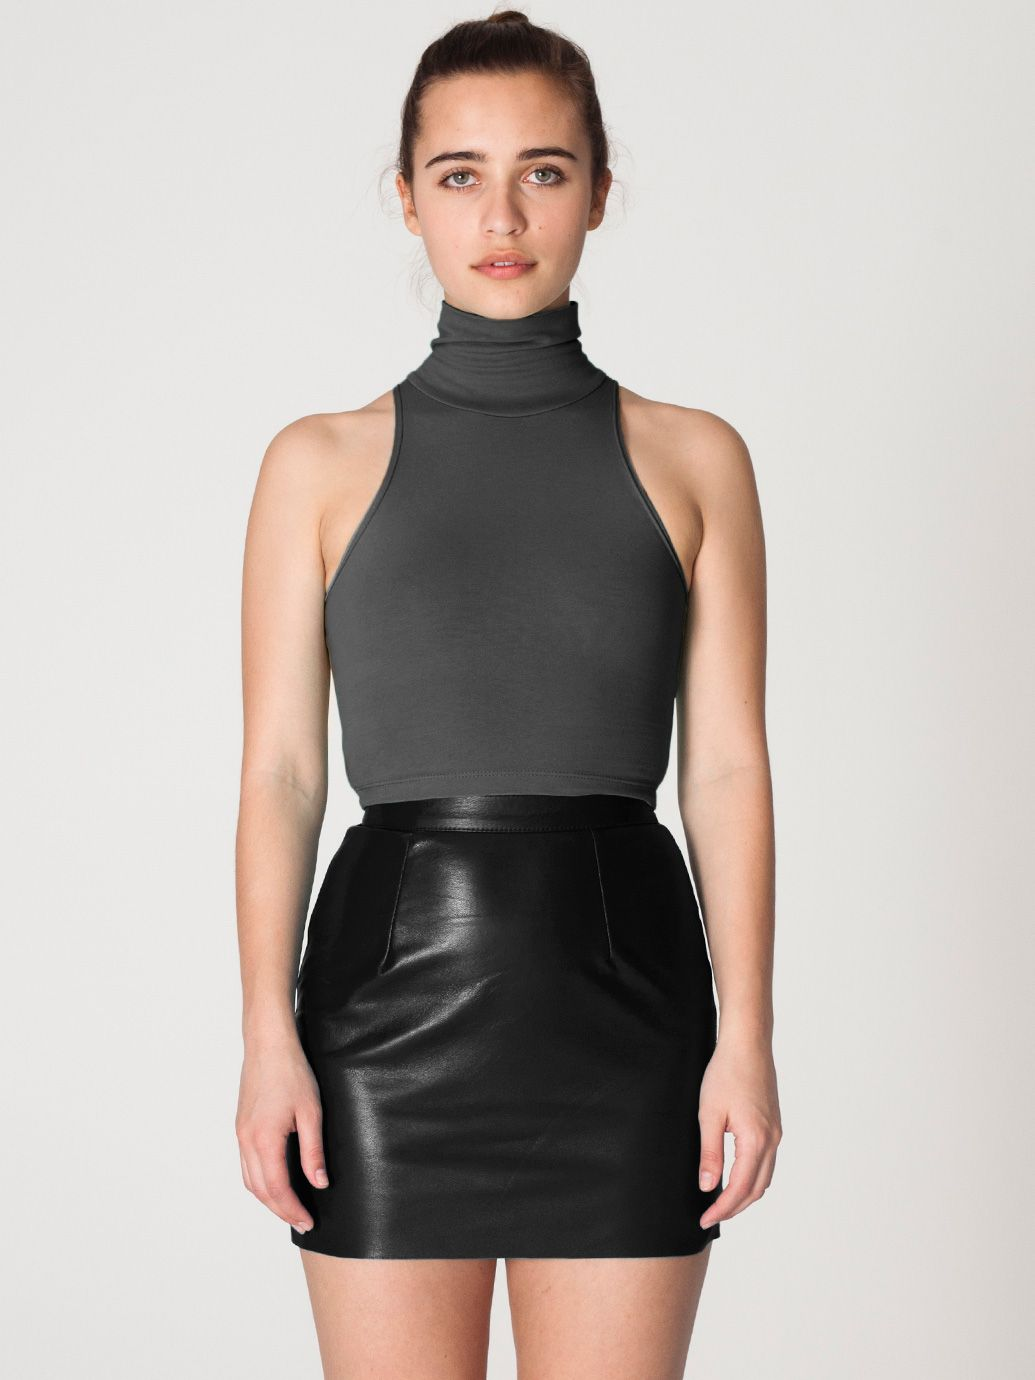 The Leather Mini Skirt in Black by #AmericanApparel. #leather ...